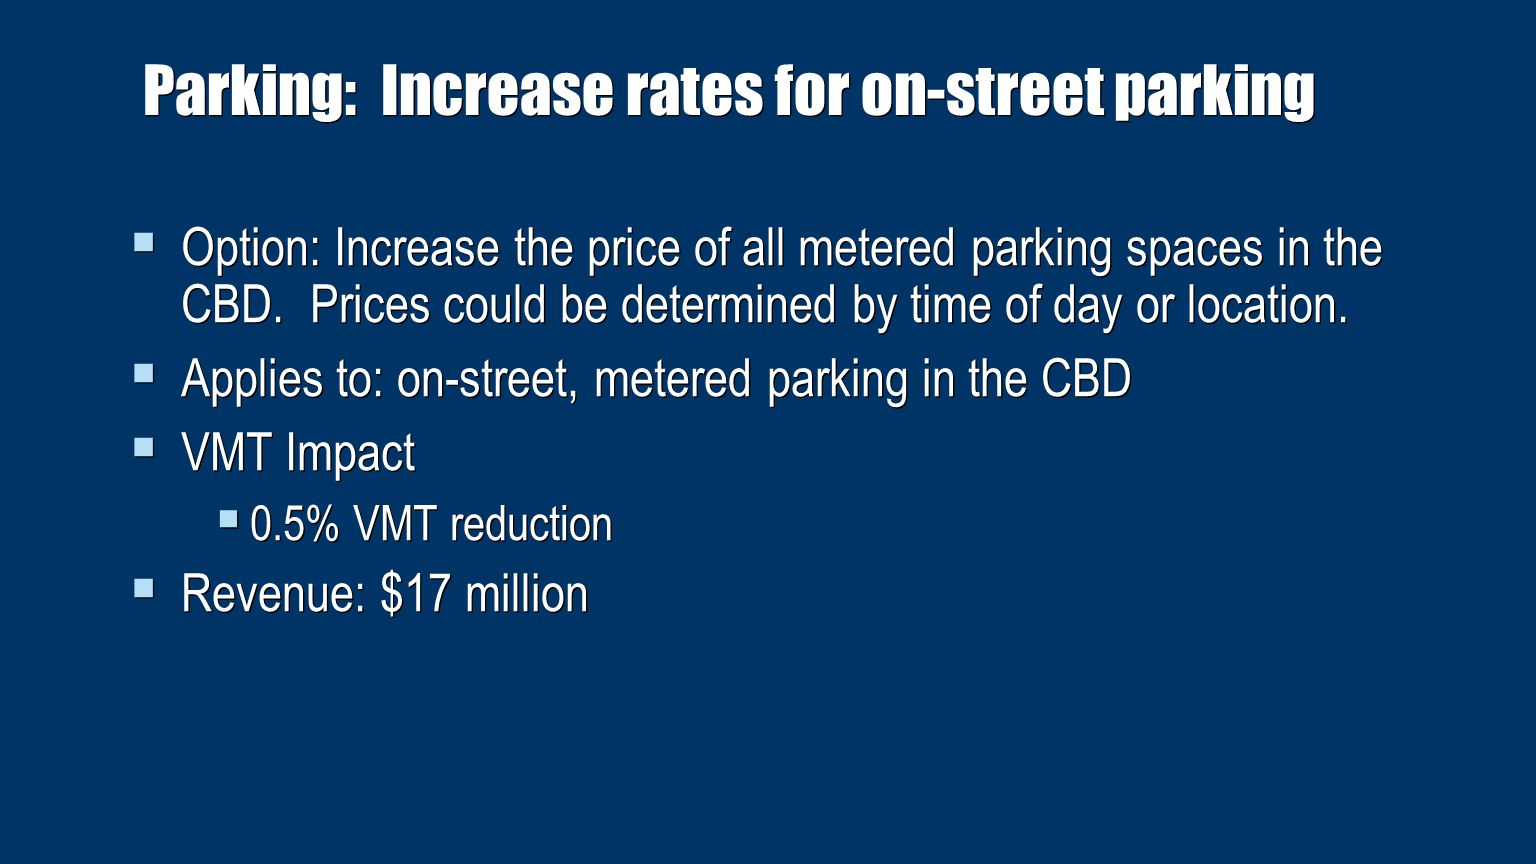 Parking: Introduce overnight on-street parking fee  Option: Implement a $2 fee for overnight on-street parking in the CBD during the week.